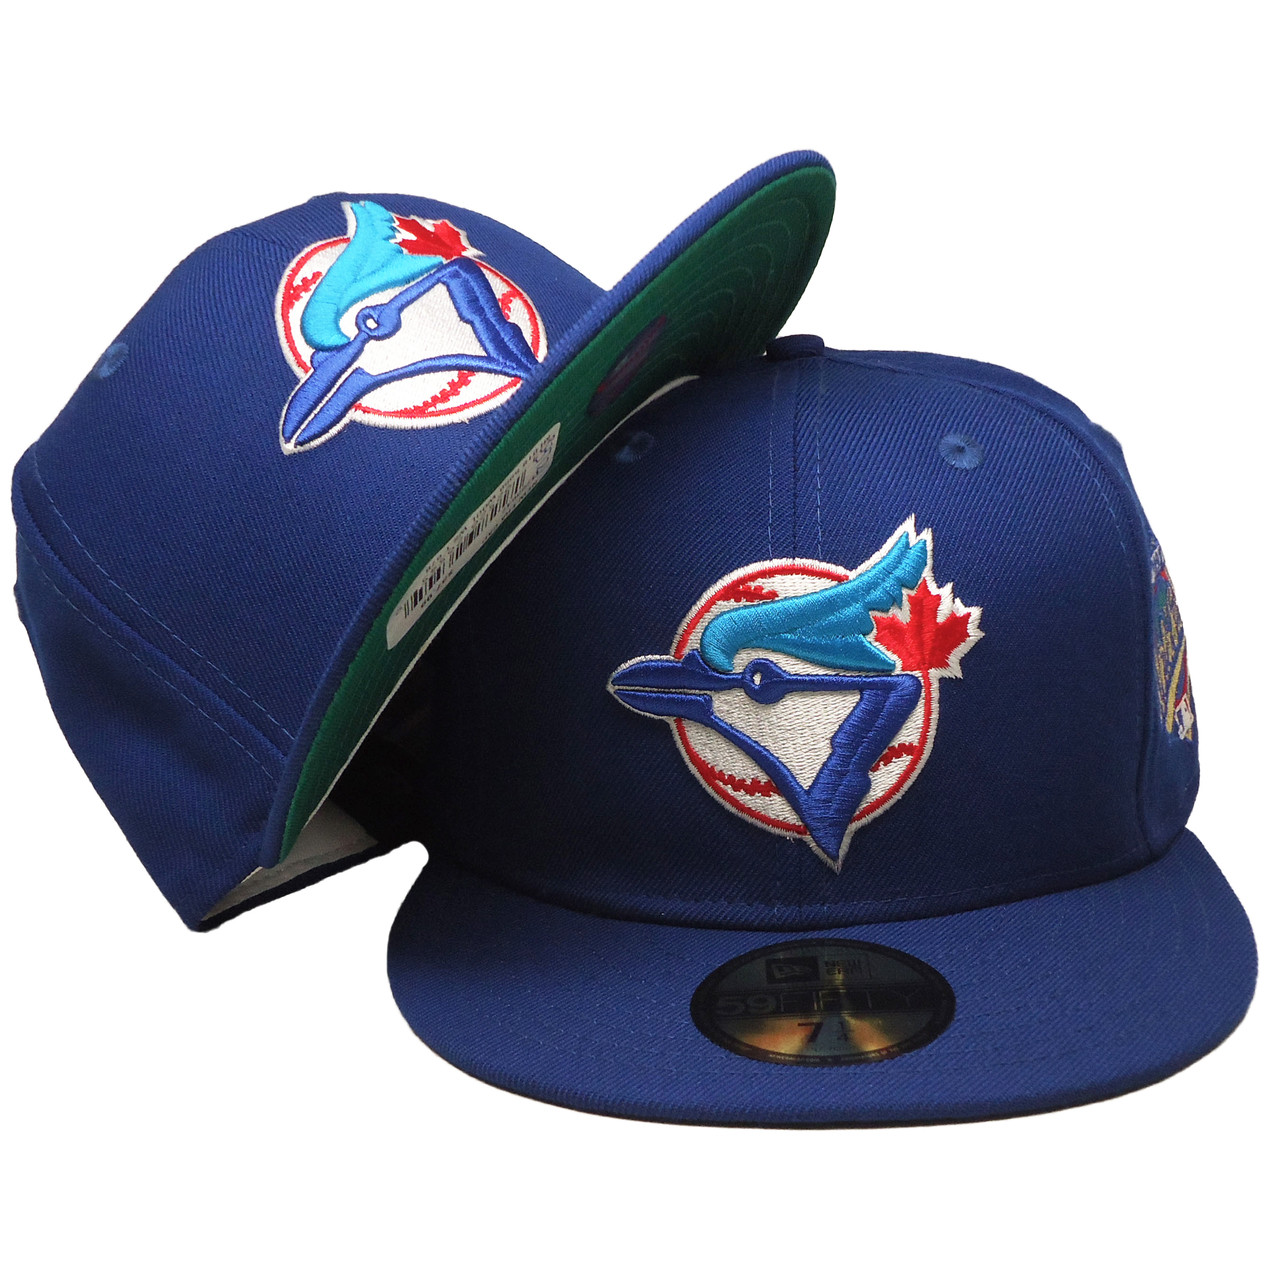 b01a821f7a3f84 Toronto Blue Jays 93 WS New Era 59Fifty Fitted Hat - Blue, Red, White -  ECapsUnlimited.com